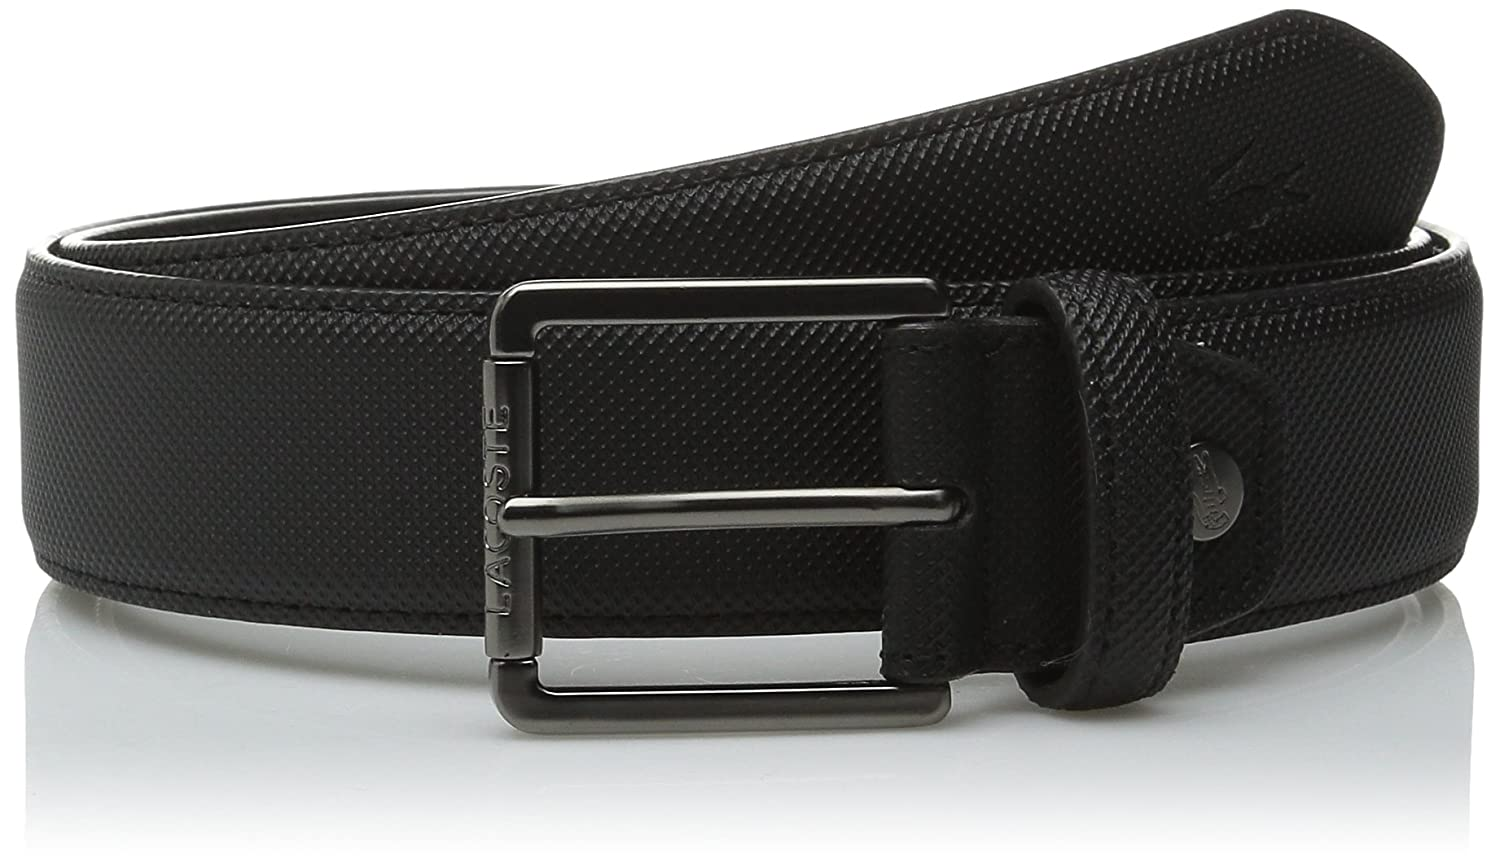 Small Leather Goods - Belts IRIS & INK NxZgyd4Xg